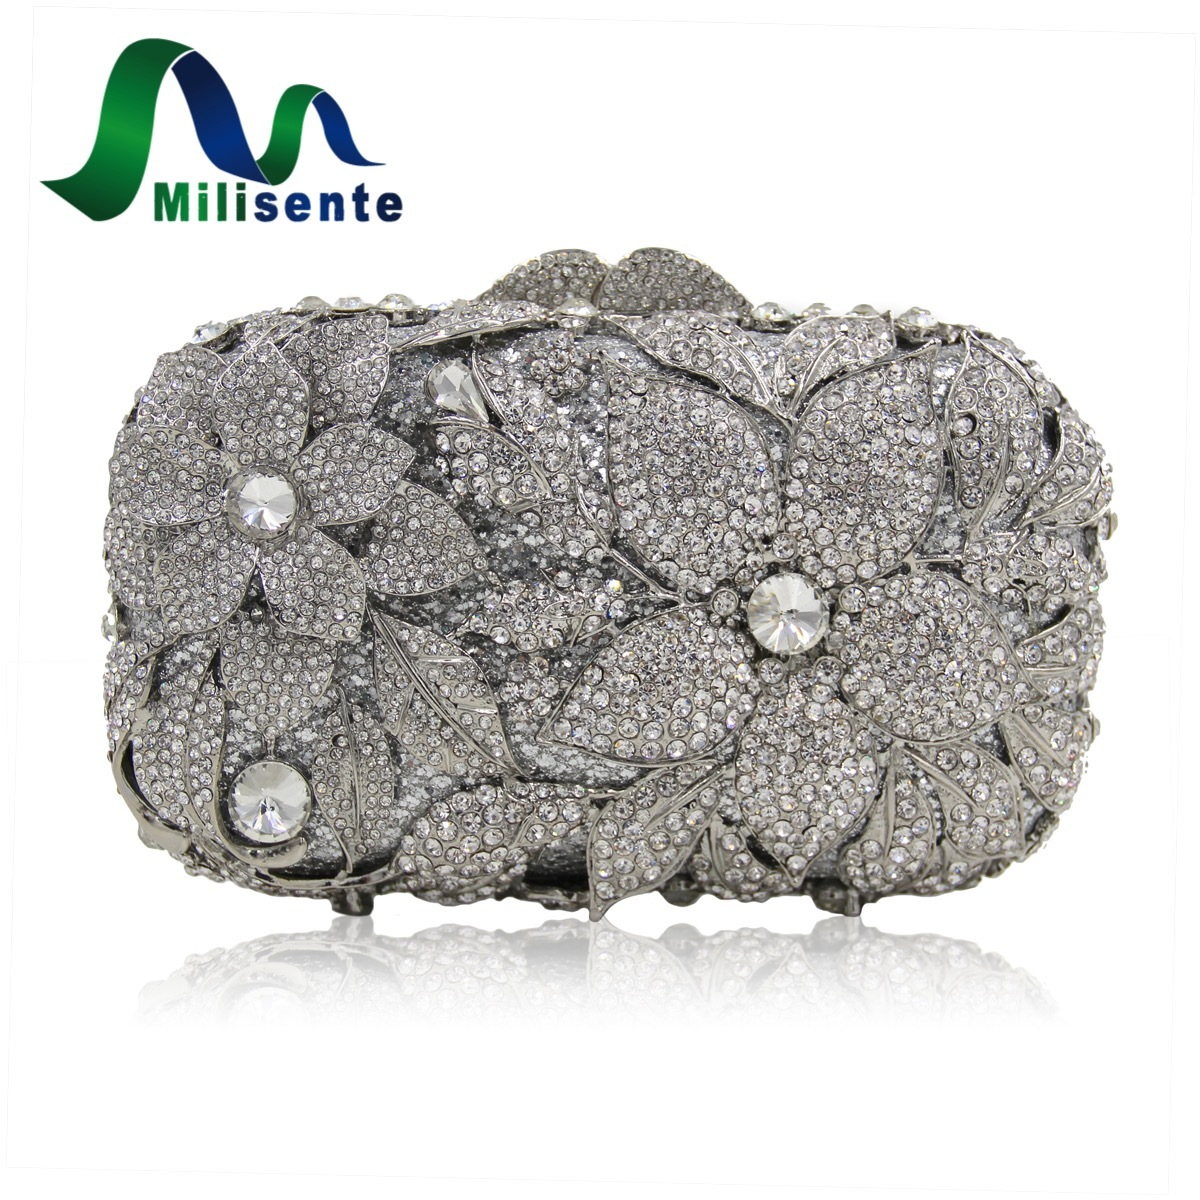 Milisente Top Class Crystal Bags Silver Flower Wedding Party Handbag Luxury Tote Bag Lady Clutch Evening Purse Short Chain milisente high quality luxury crystal evening bag women wedding purses lady party clutch handbag green blue gold white